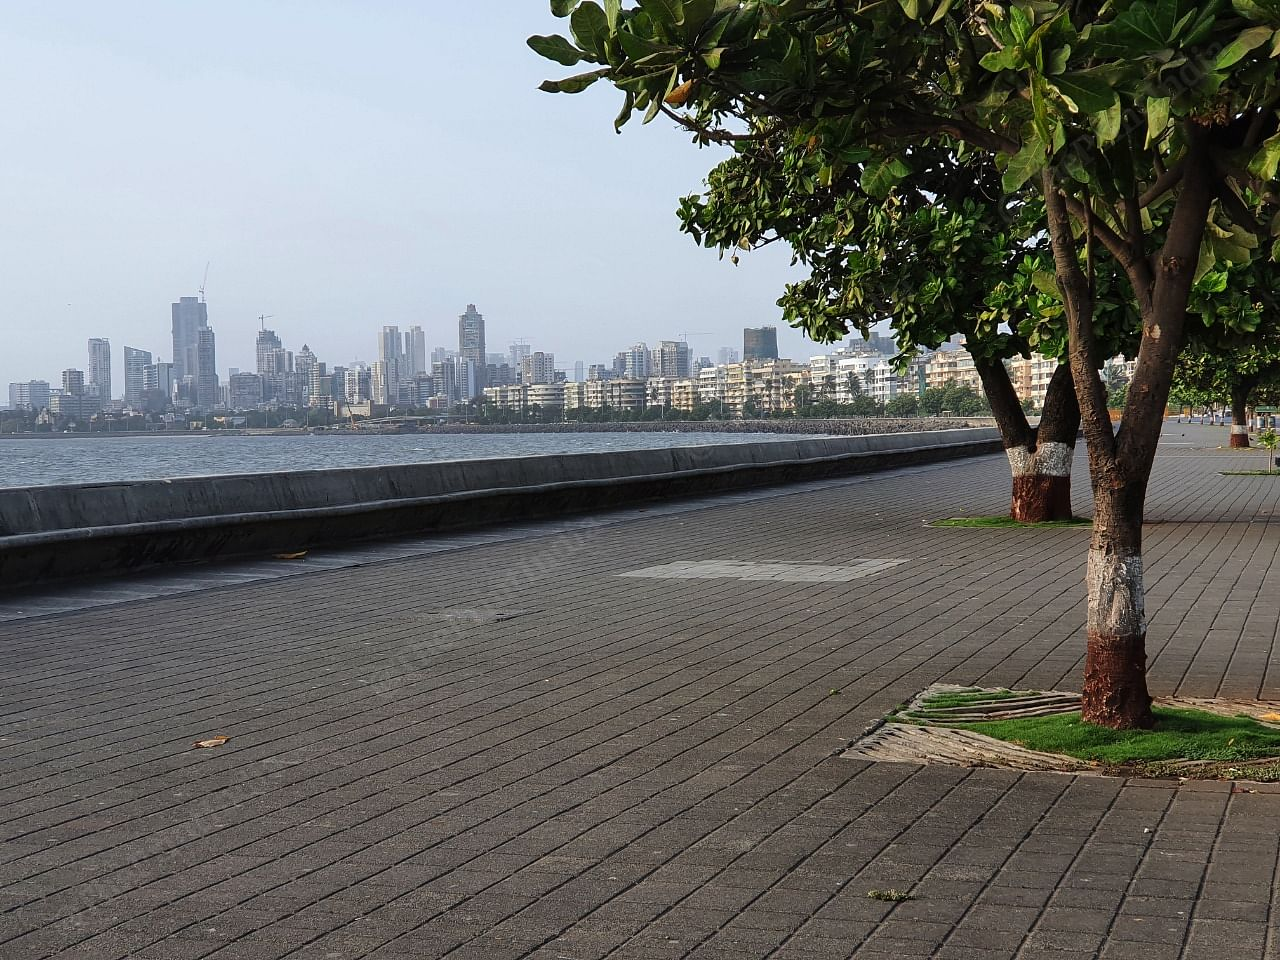 Marine drive, the queens necklace, looks sombre without tourists and residents sitting and enjoying the evening breeze   Photo: Soniya Agarwal   ThePrint